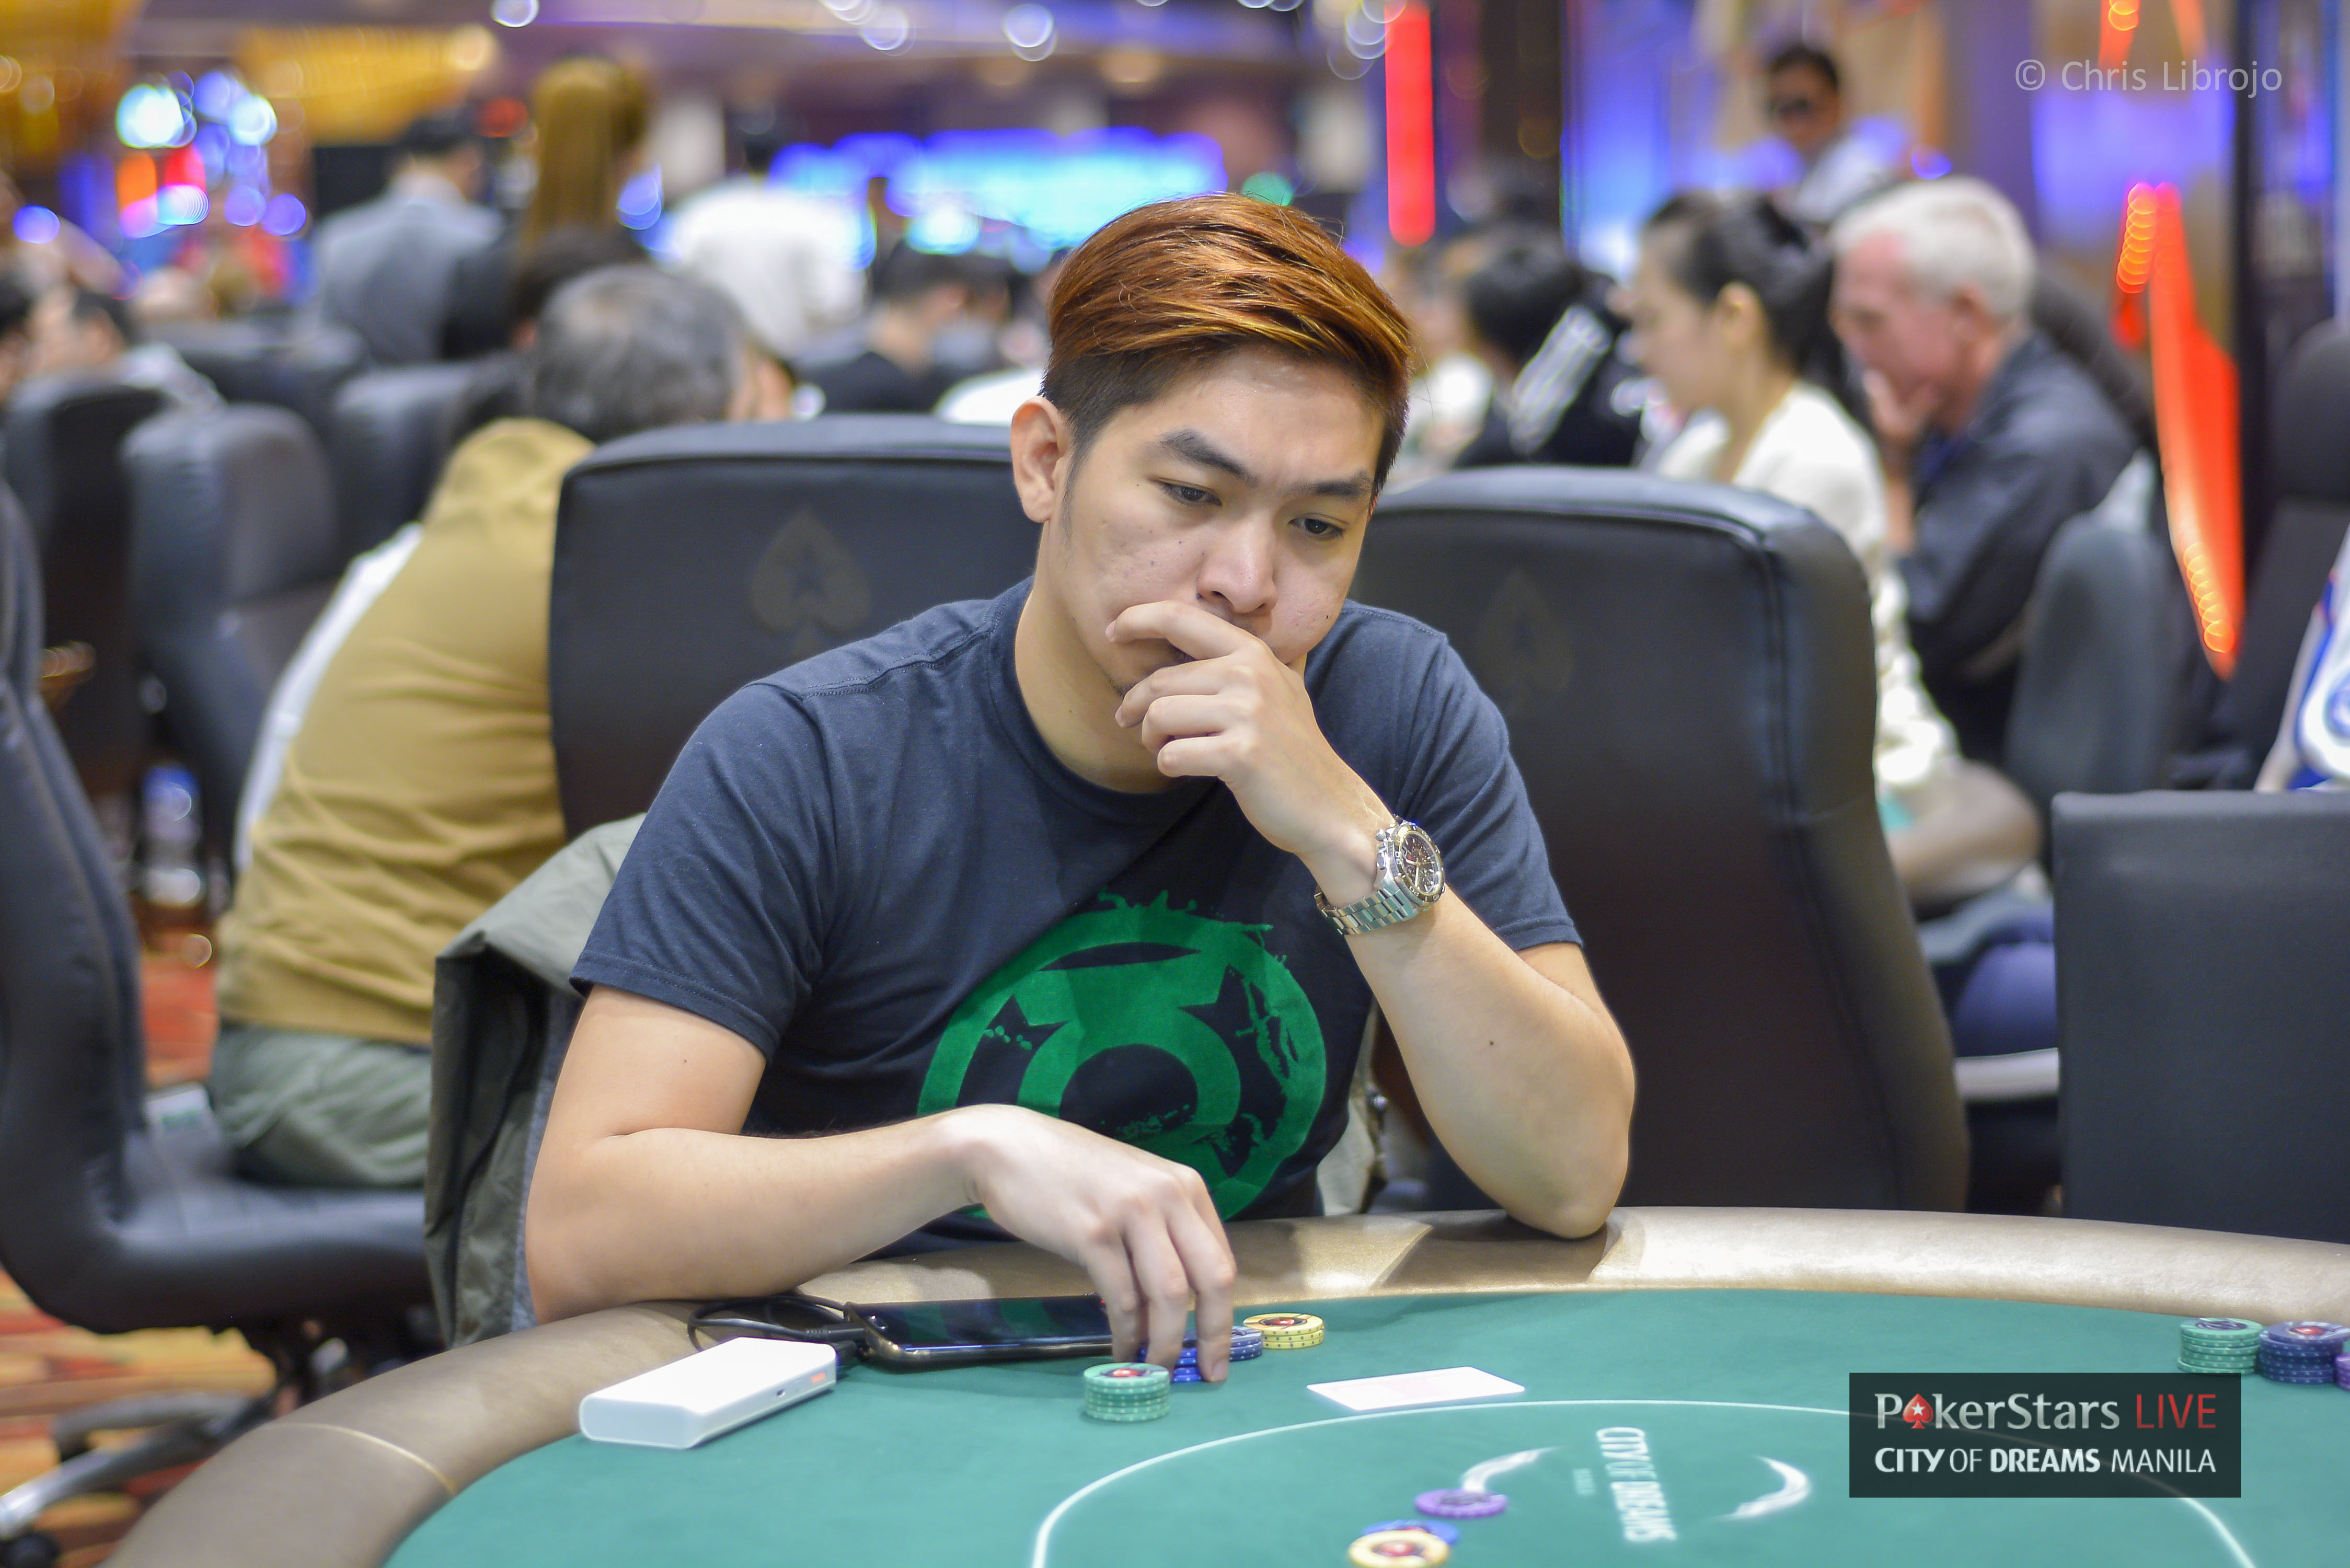 Manila poker betting order premier sports betting bet and win code for big